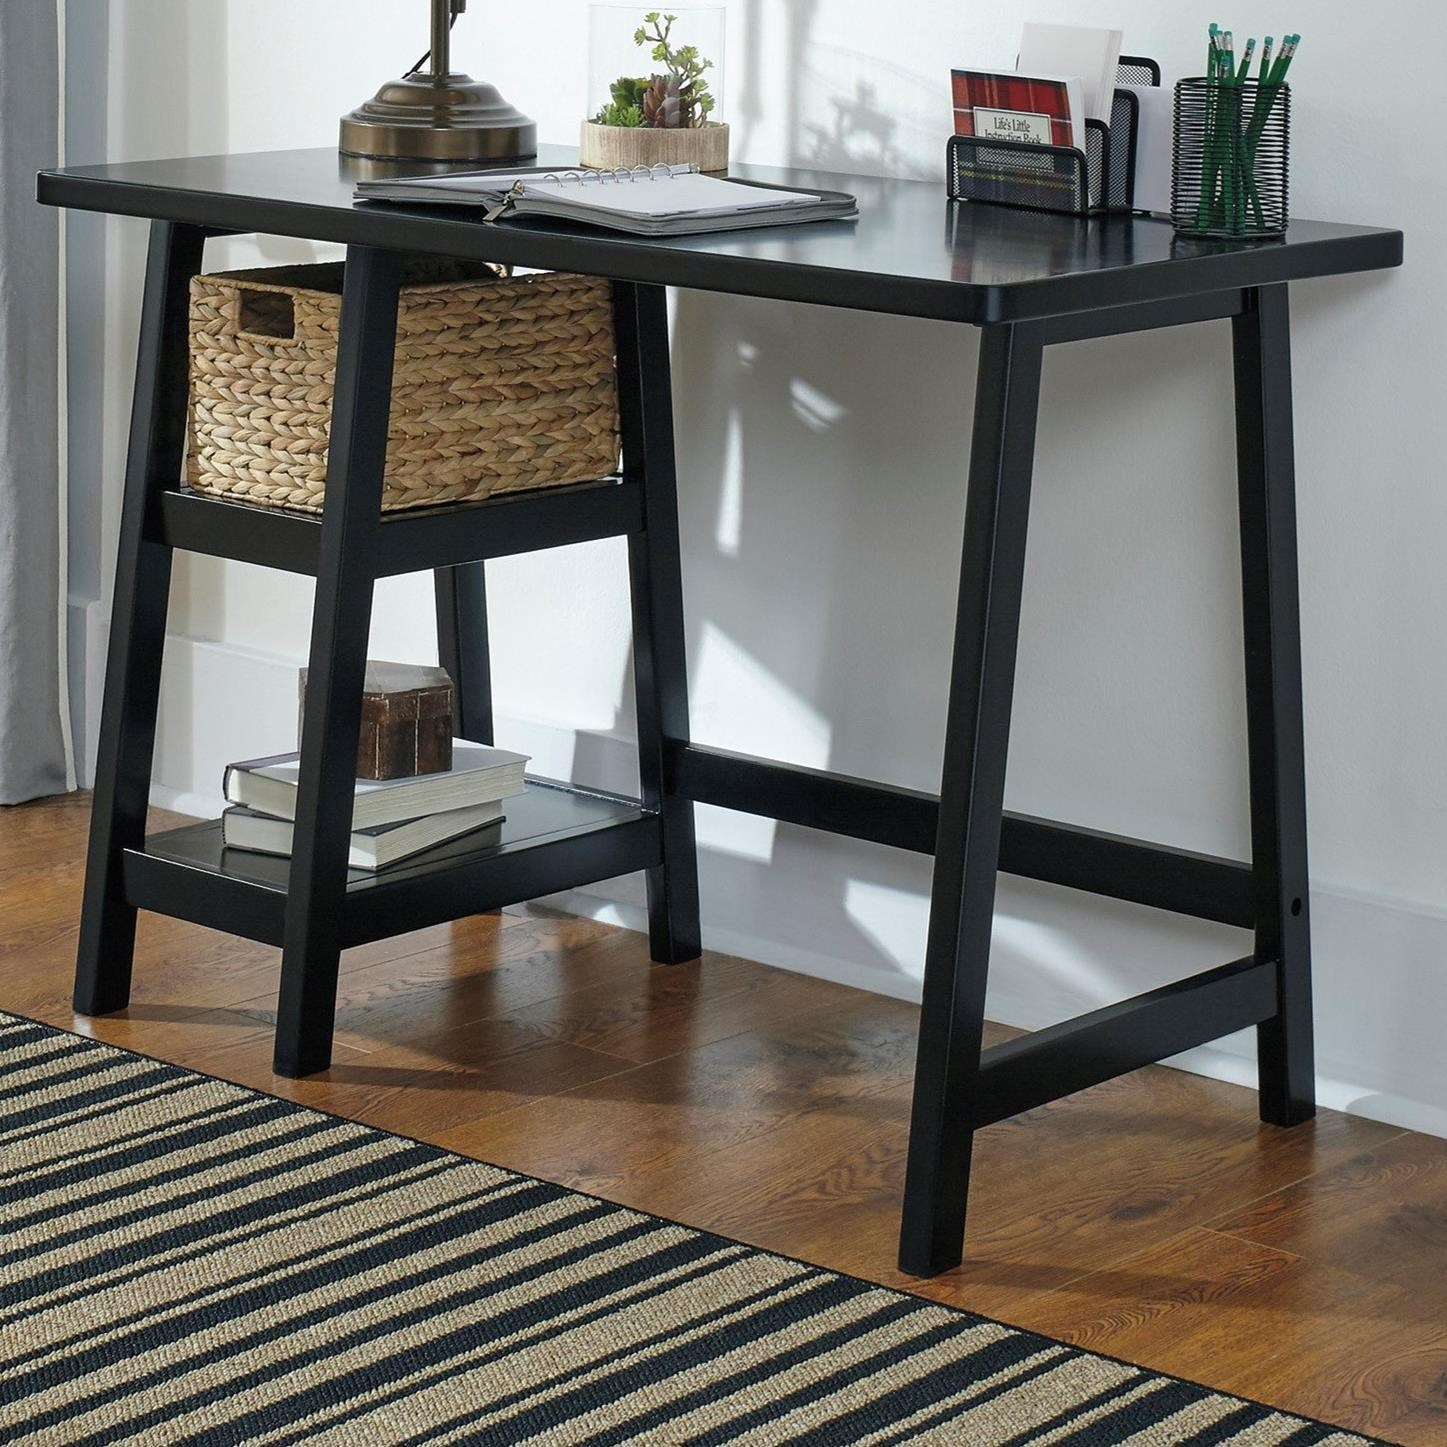 Home Office Small Desk with Woven Basket